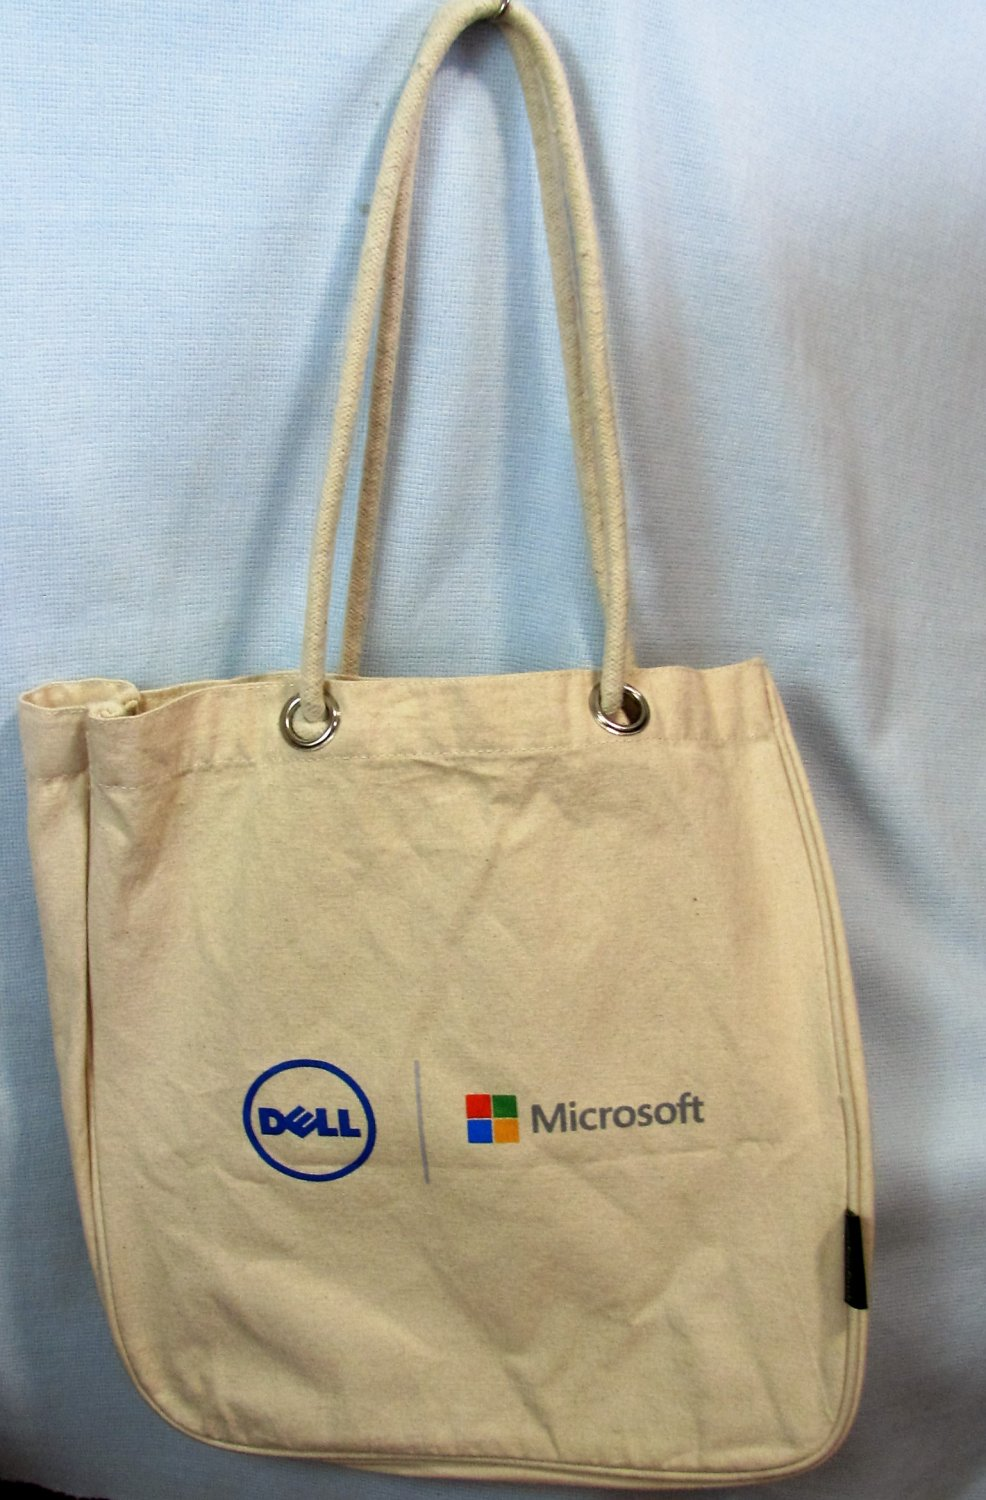 Microsoft Dell Computer Recycle ReUse Canvas Tote Bag